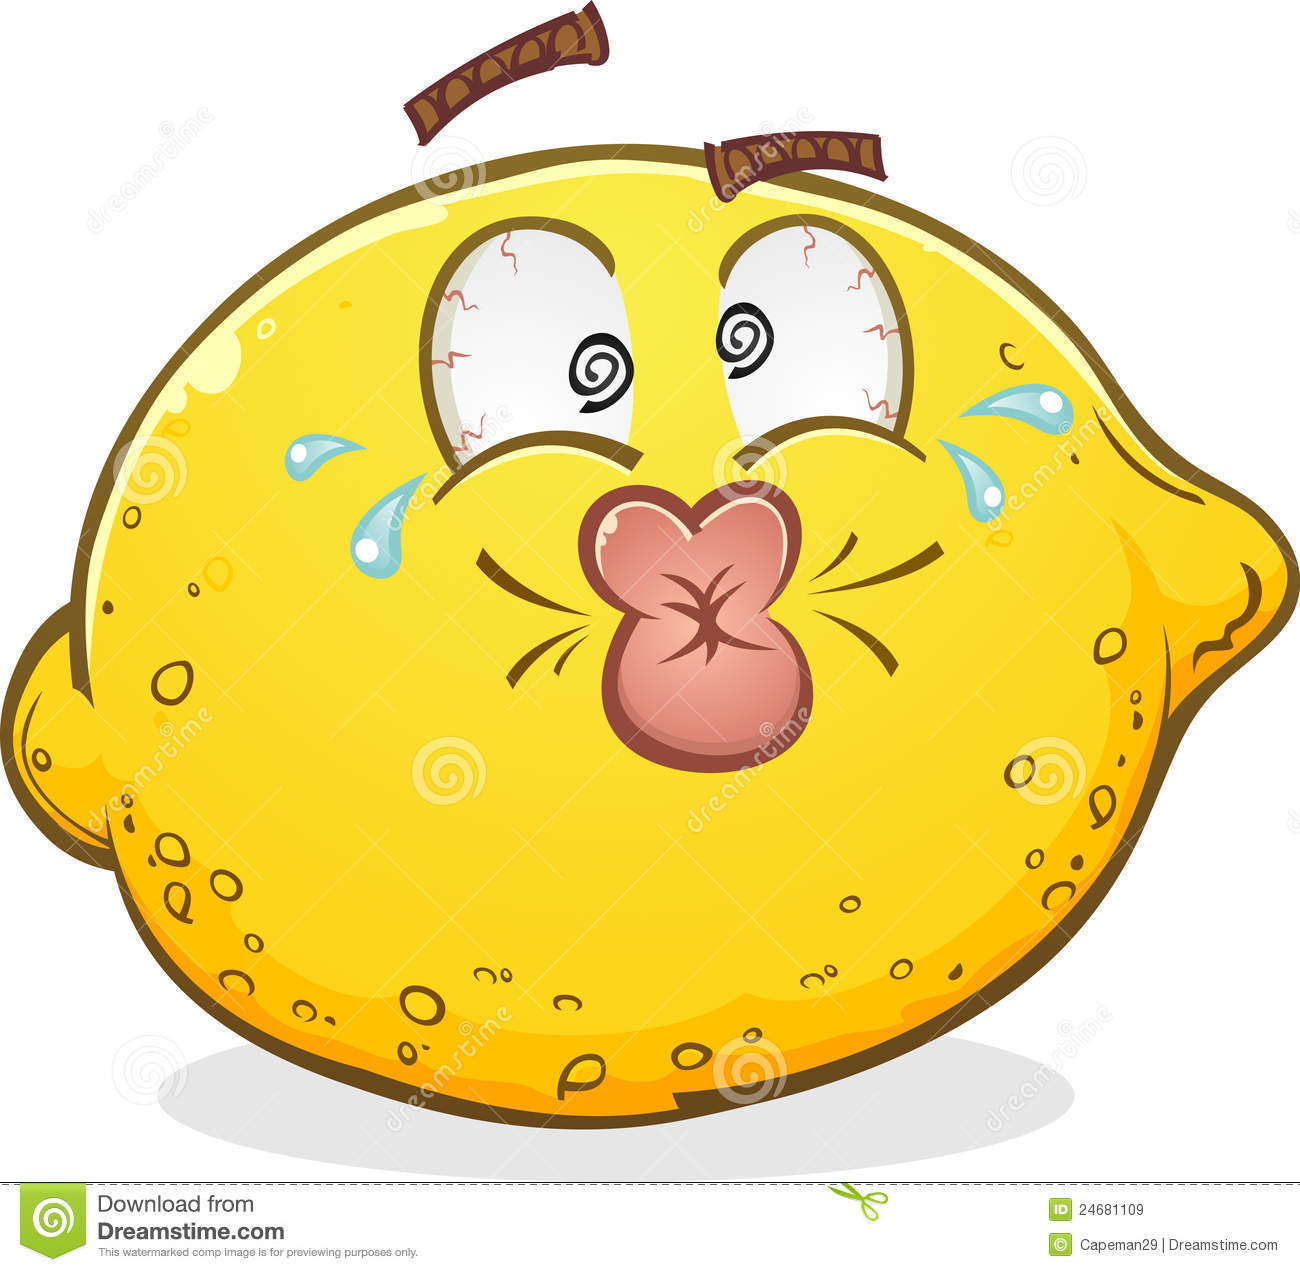 Lemon Pucker Character Royalty Free Stock Images - Image: 24681109